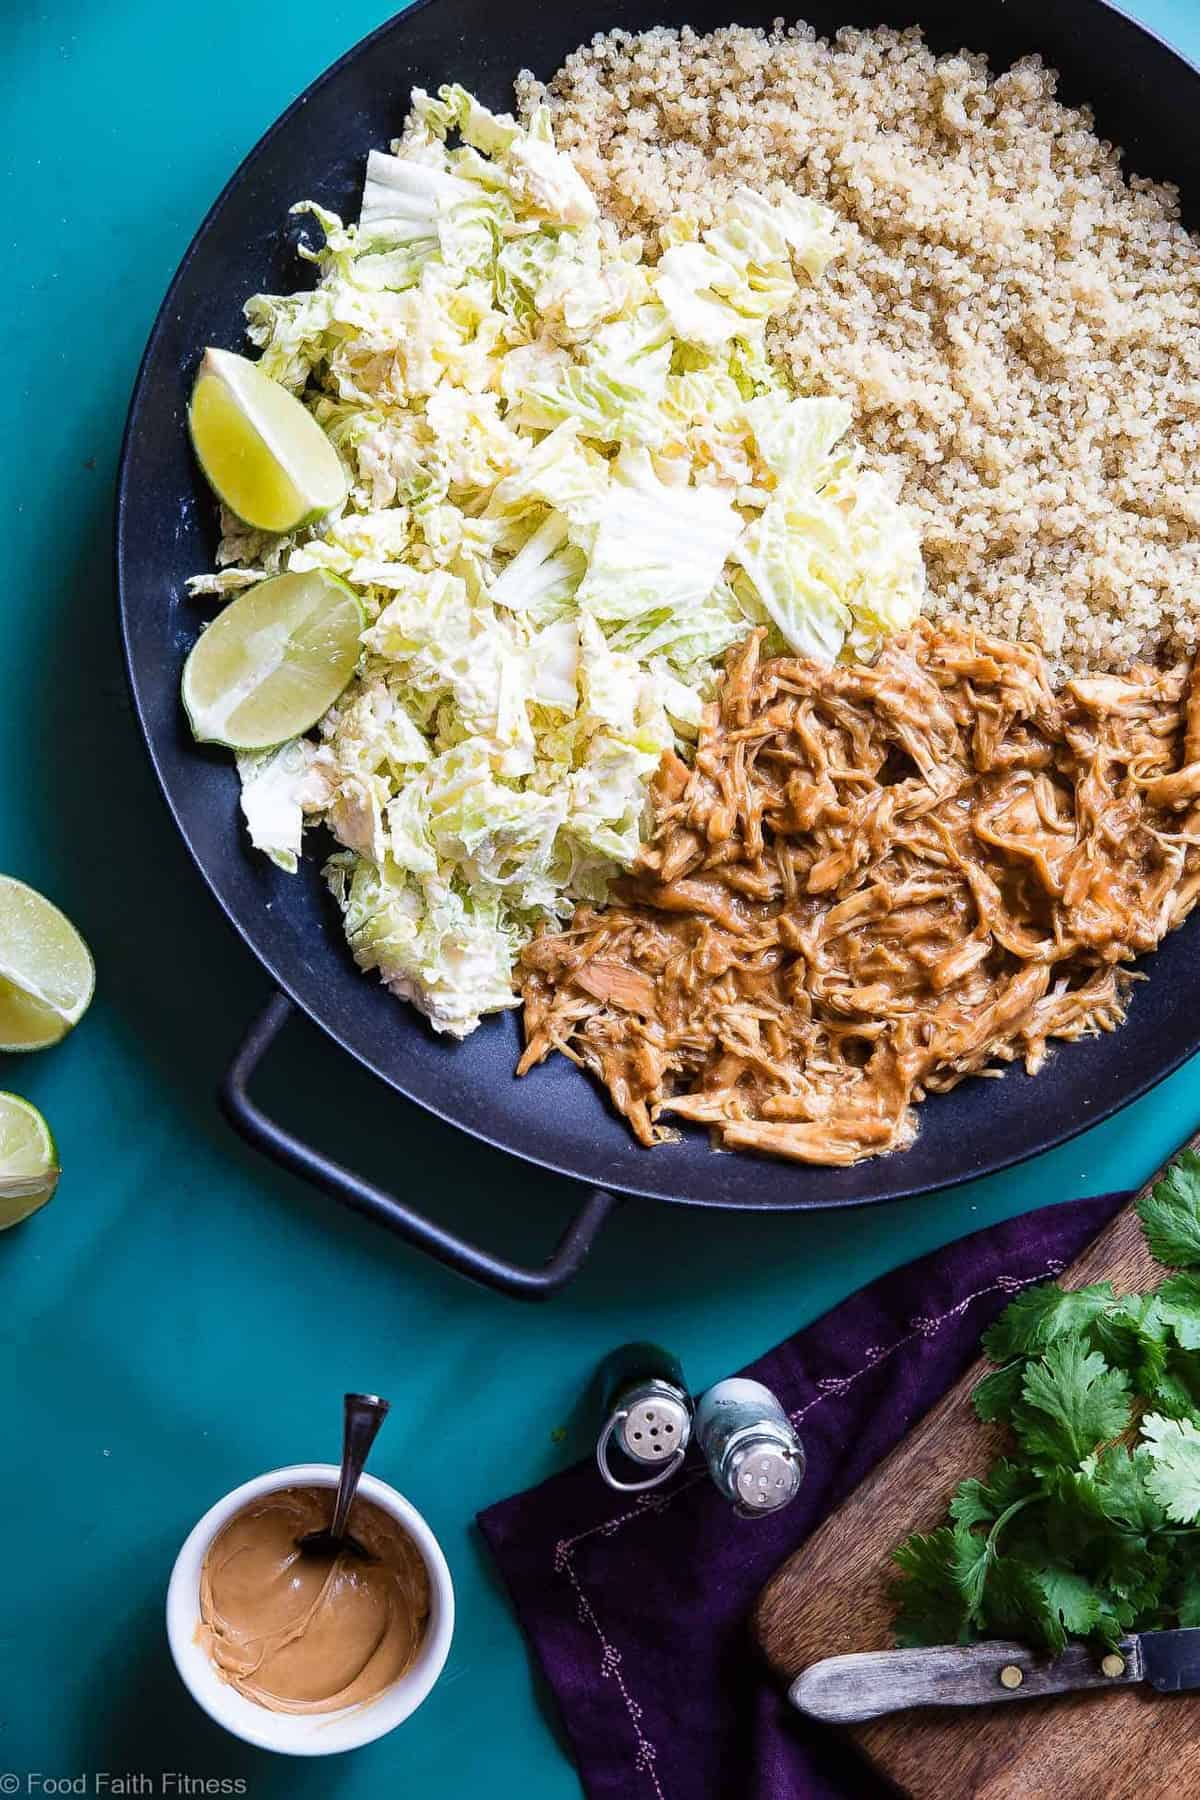 Slow Cooker Thai Peanut Butter Chicken Recipe -CREAMY crockpot Thai peanut chicken ismixed with quinoa and a spicy cabbage slaw to make a family friendly, gluten free and healthy meal! Theslow cooker does the work for you! | #Foodfaithfitness | #Glutenfree #Dairyfree #Healthy #Slowcooker #Crockpot